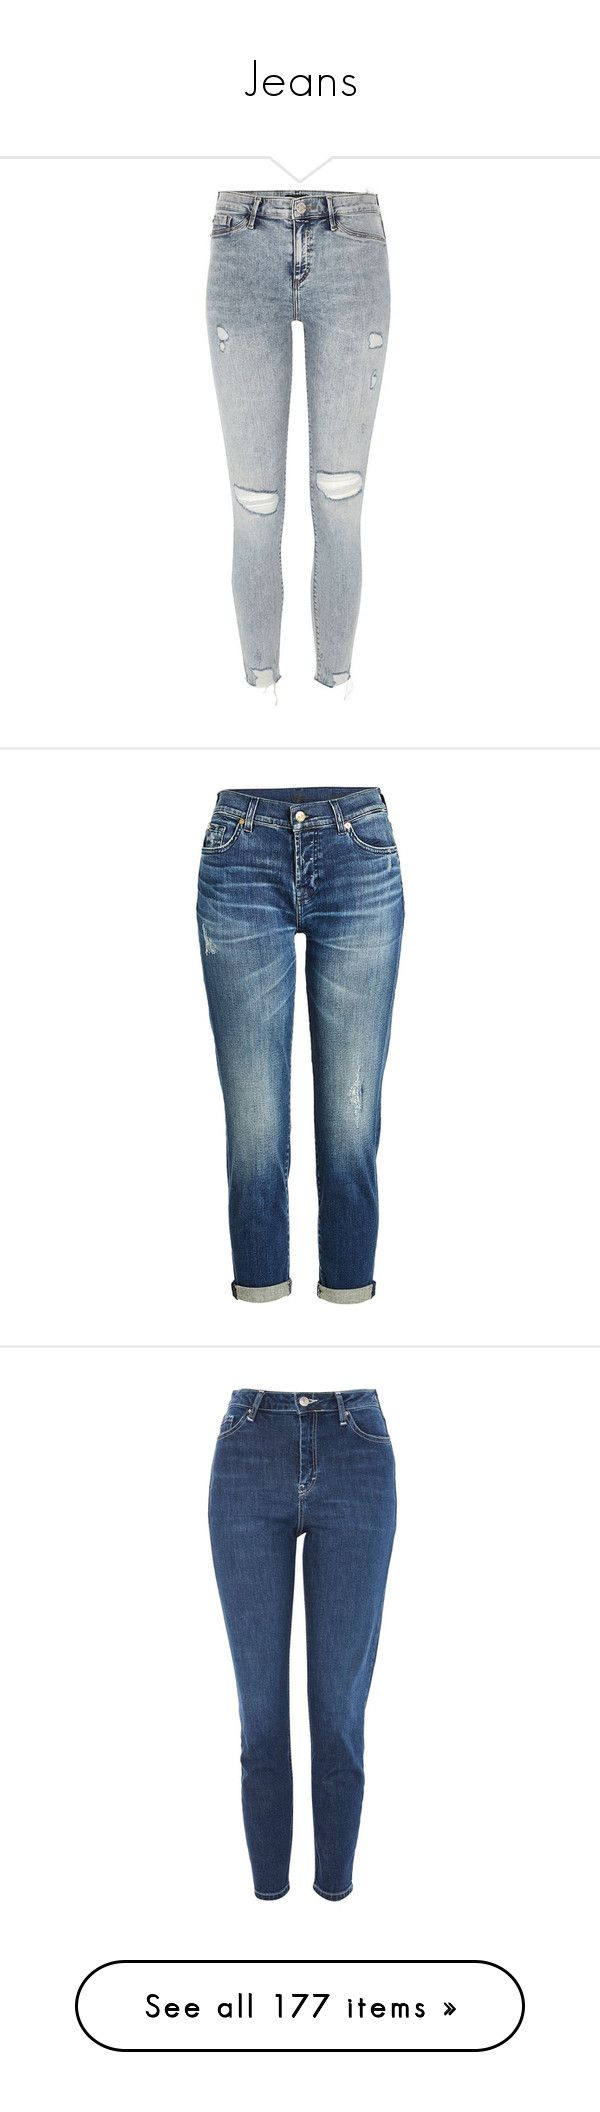 """""""Jeans"""" by piggy-nl ❤ liked on Polyvore featuring pants, leggings, jeans, river island, jeggings, women, jeggings leggings, skinny jeggings, ripped denim leggings and tall pants"""